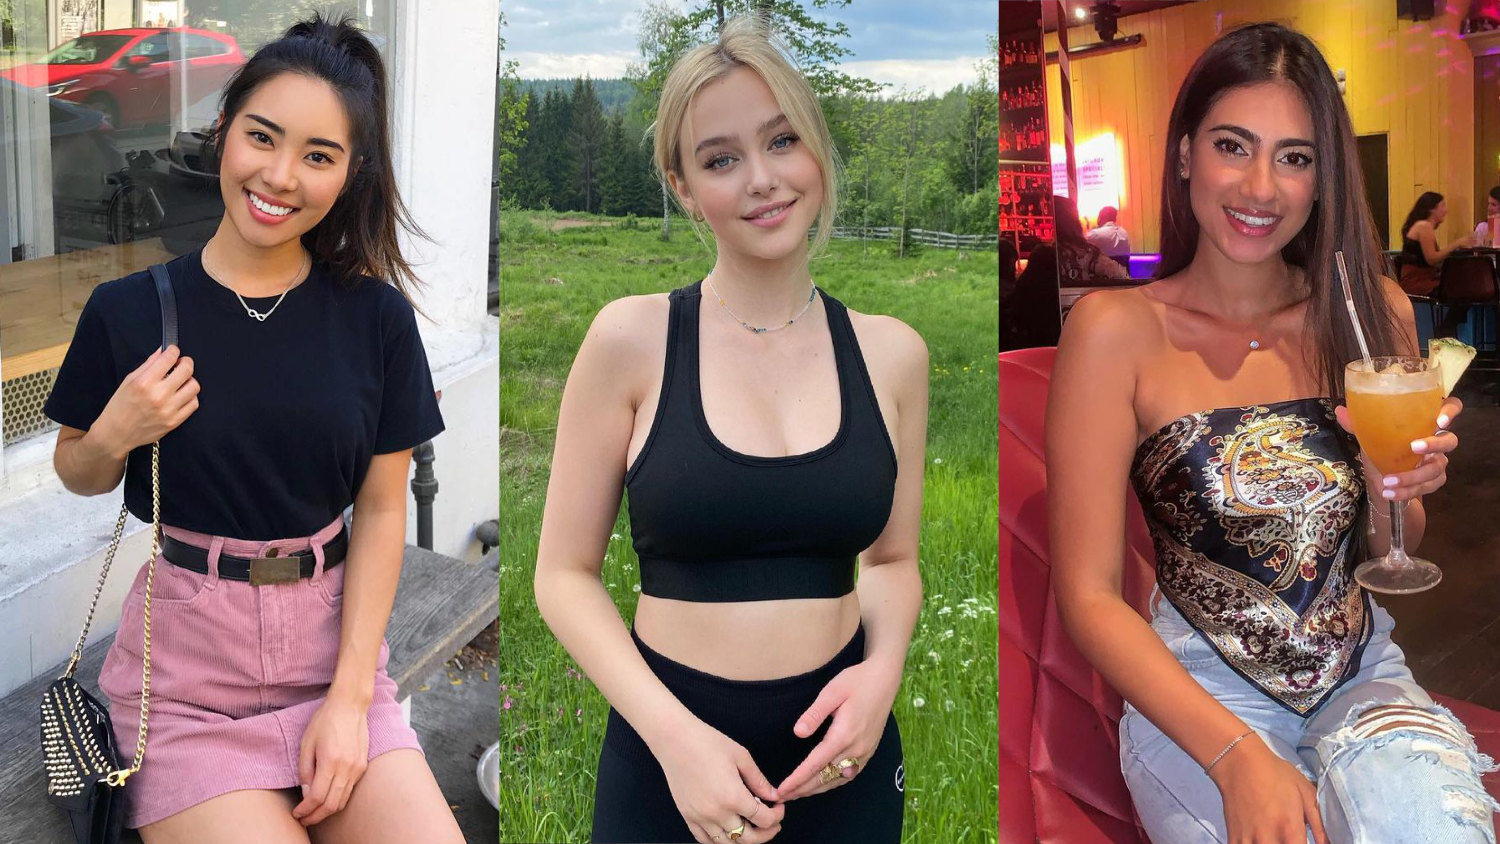 Most women can easily line up dates via dating apps